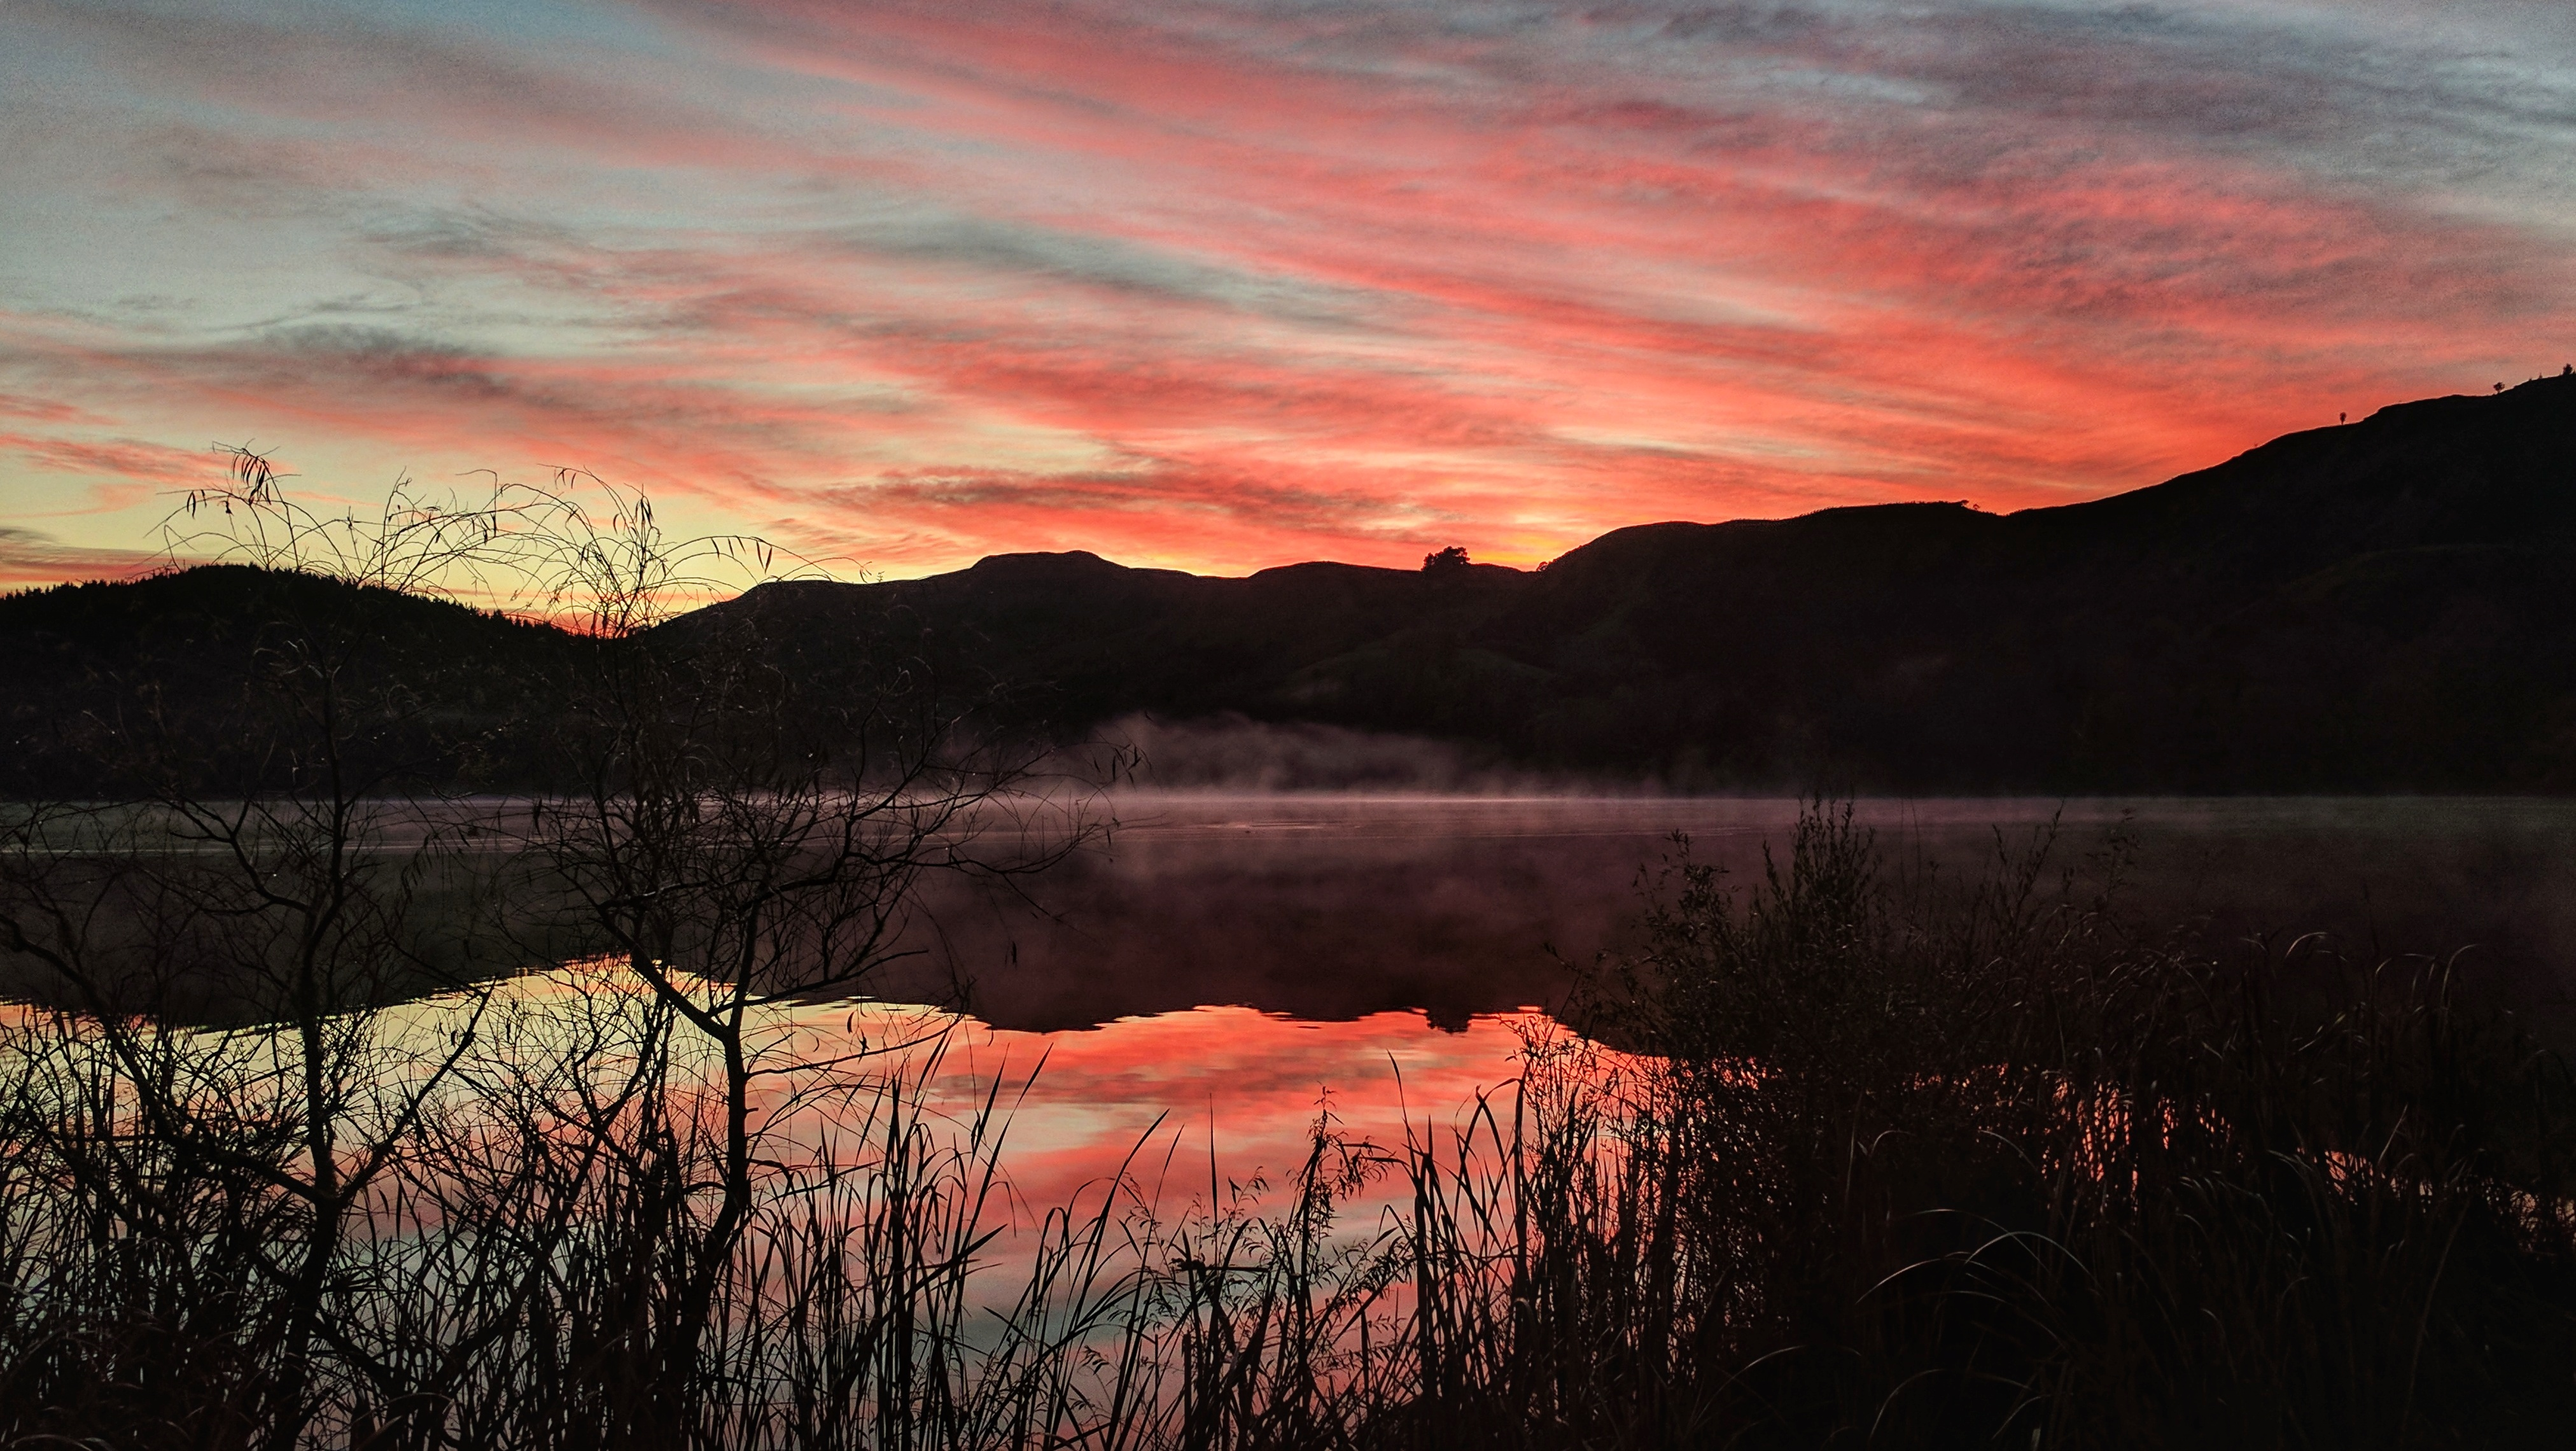 Landscape sunrise over Lake Tutira (Aotearoa New Zealand)